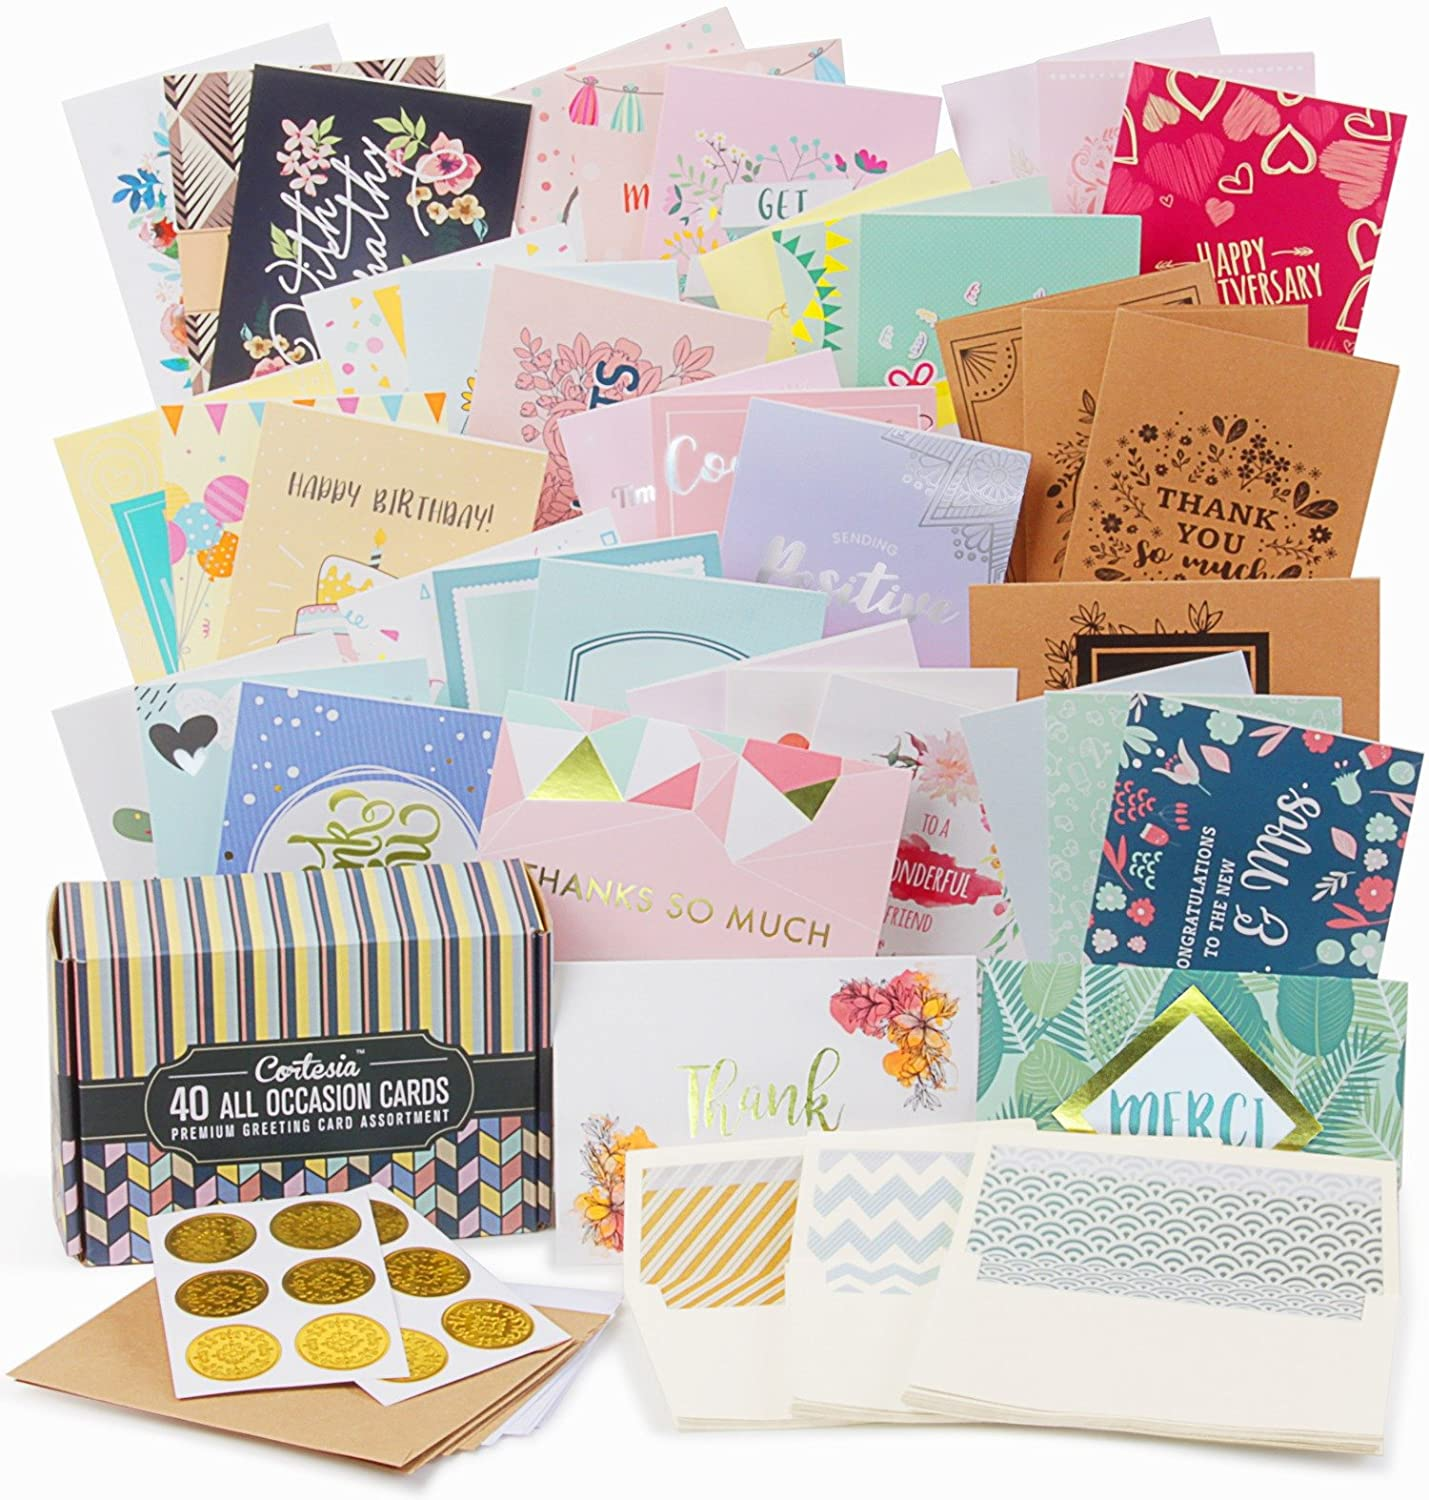 Amazon Cortesia All Occasion Premium Greeting Cards Assortment